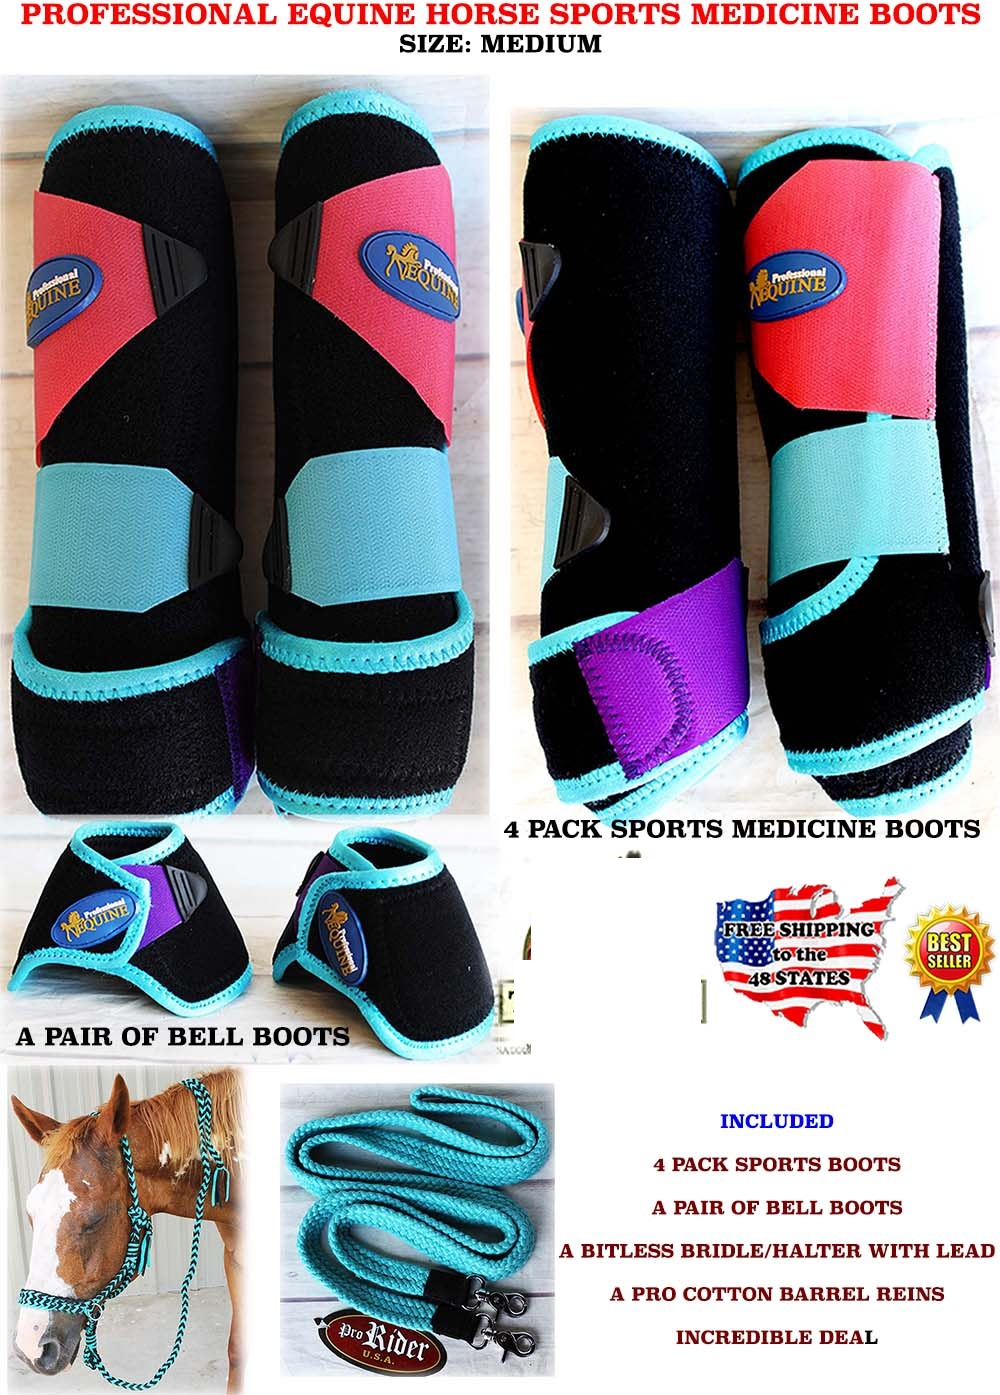 Horse Medium Professional Equine Sports Medicine Splint Boots Halter Rein 4113E by